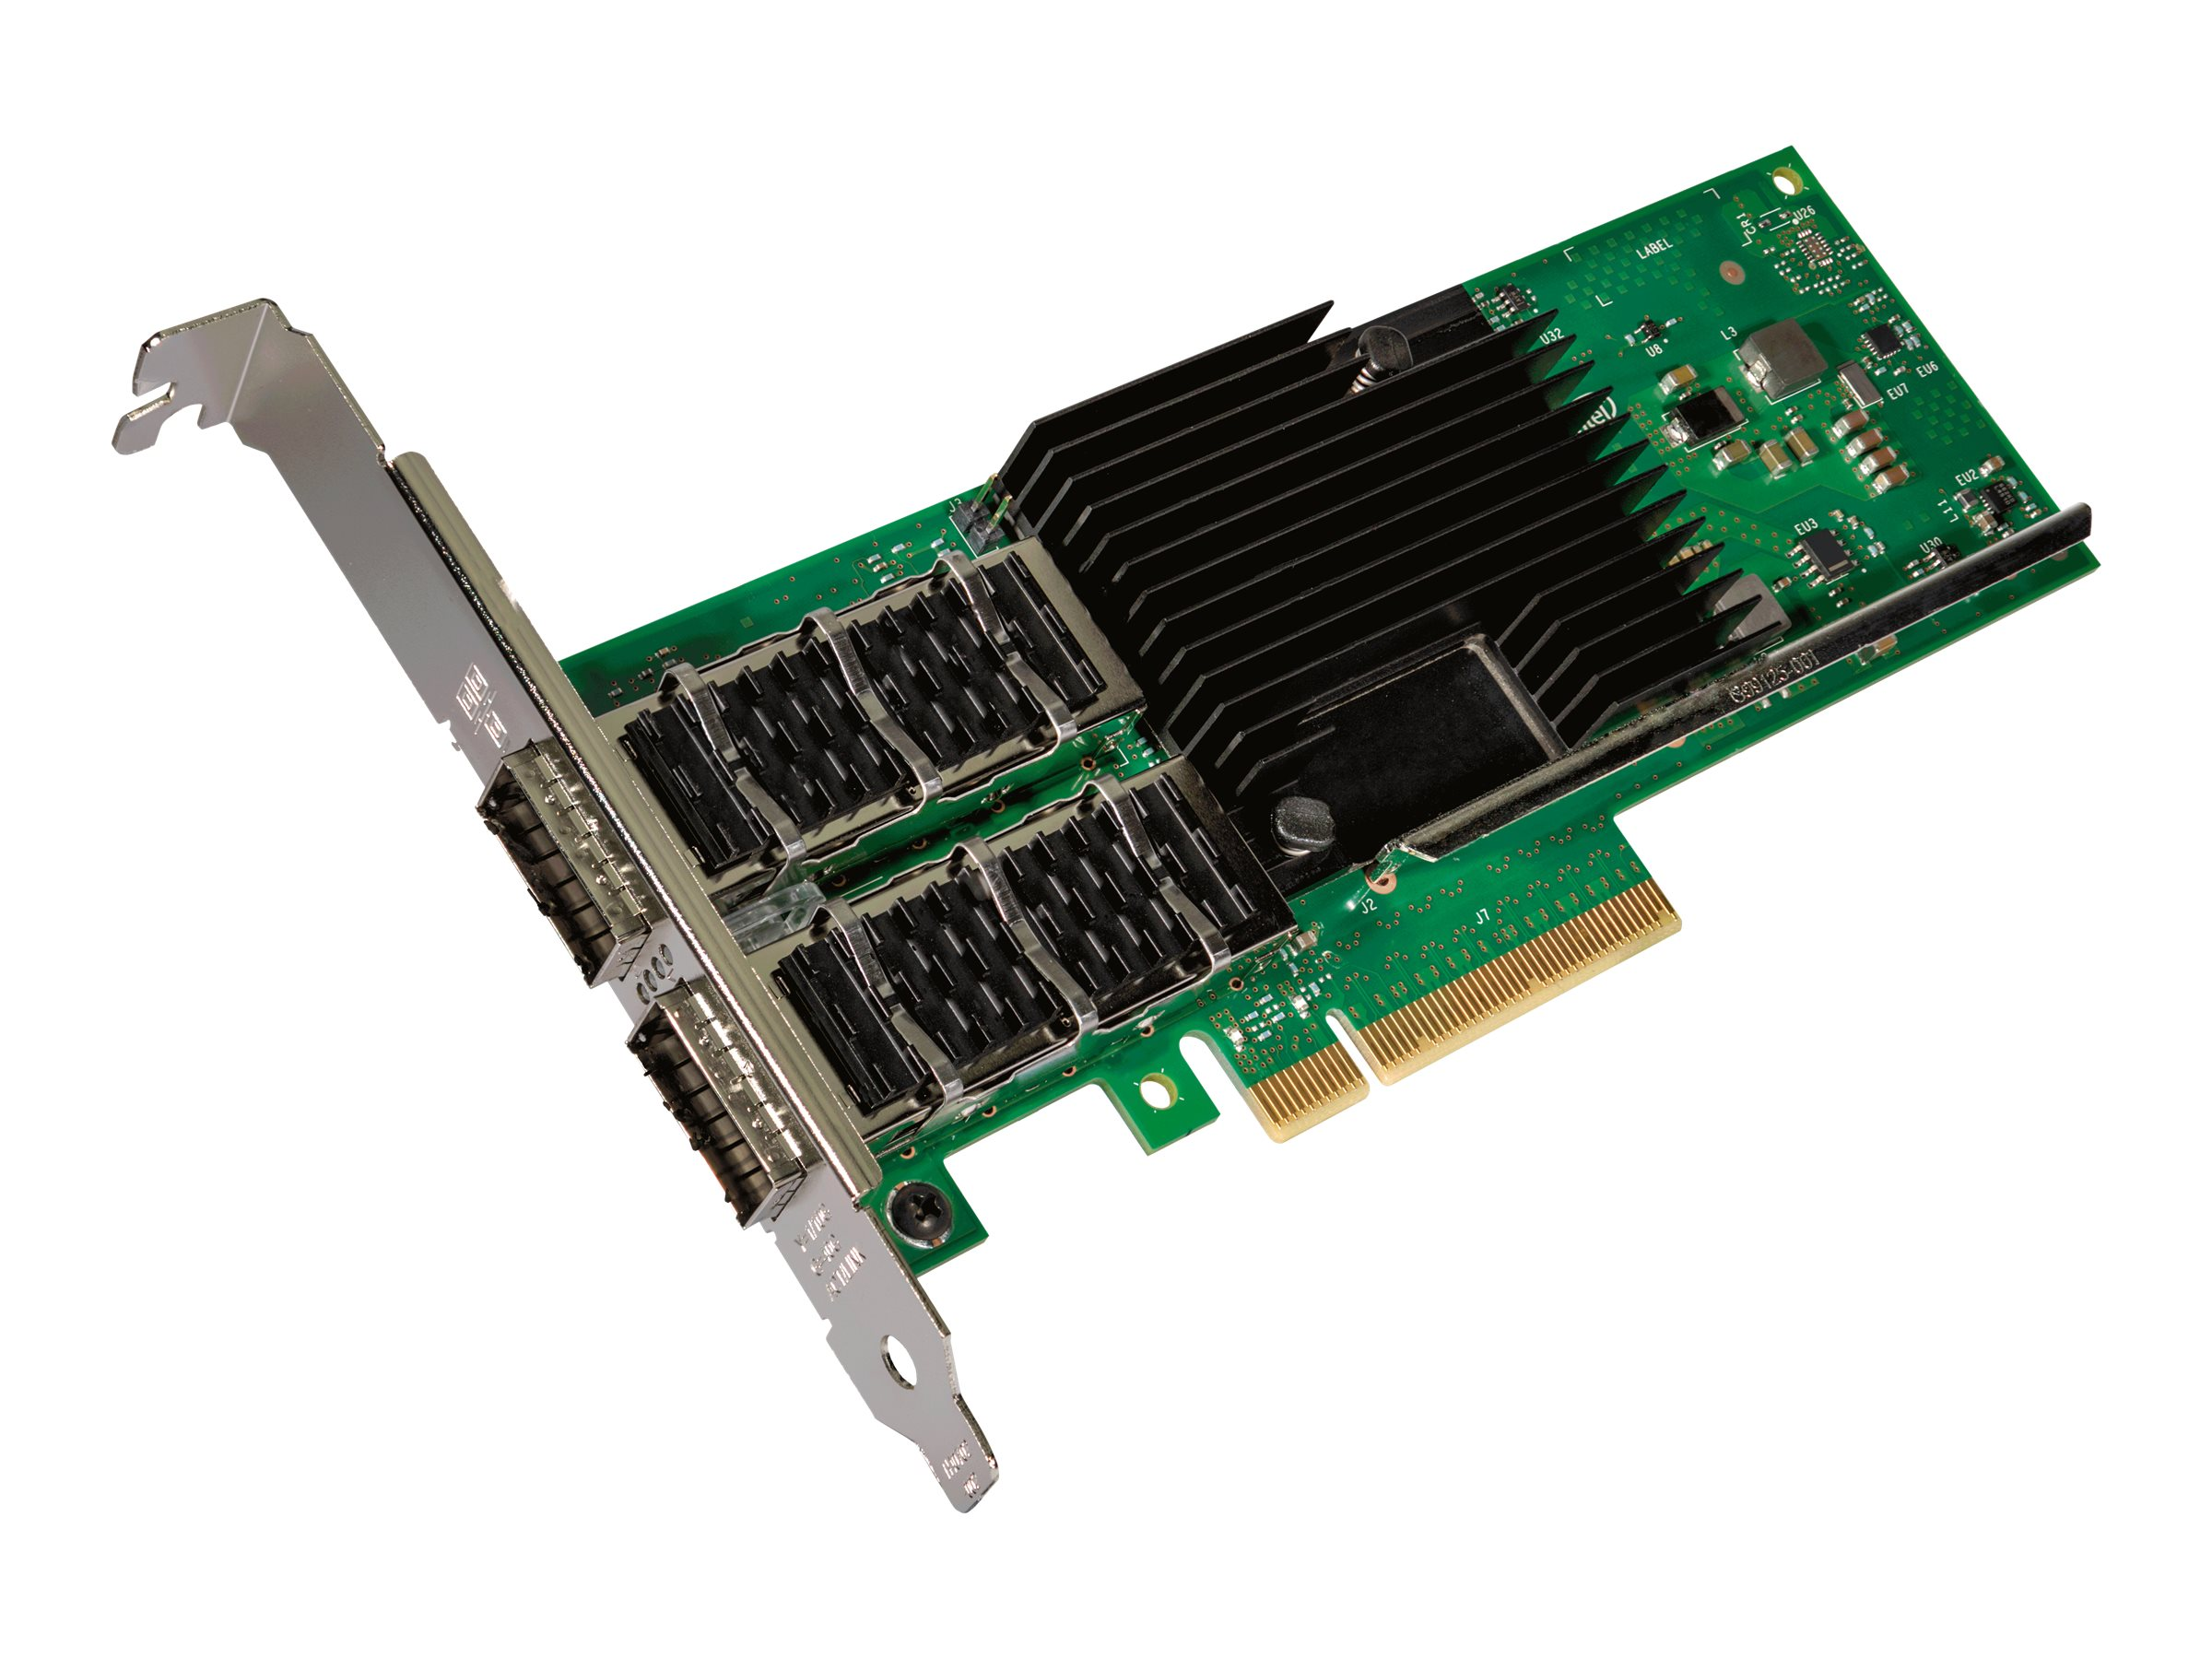 Intel Ethernet Converged Network Adapter XL710-QDA2 - network adapter - PCIe 3.0 x8 - 40 Gigabit QSFP+ x 2